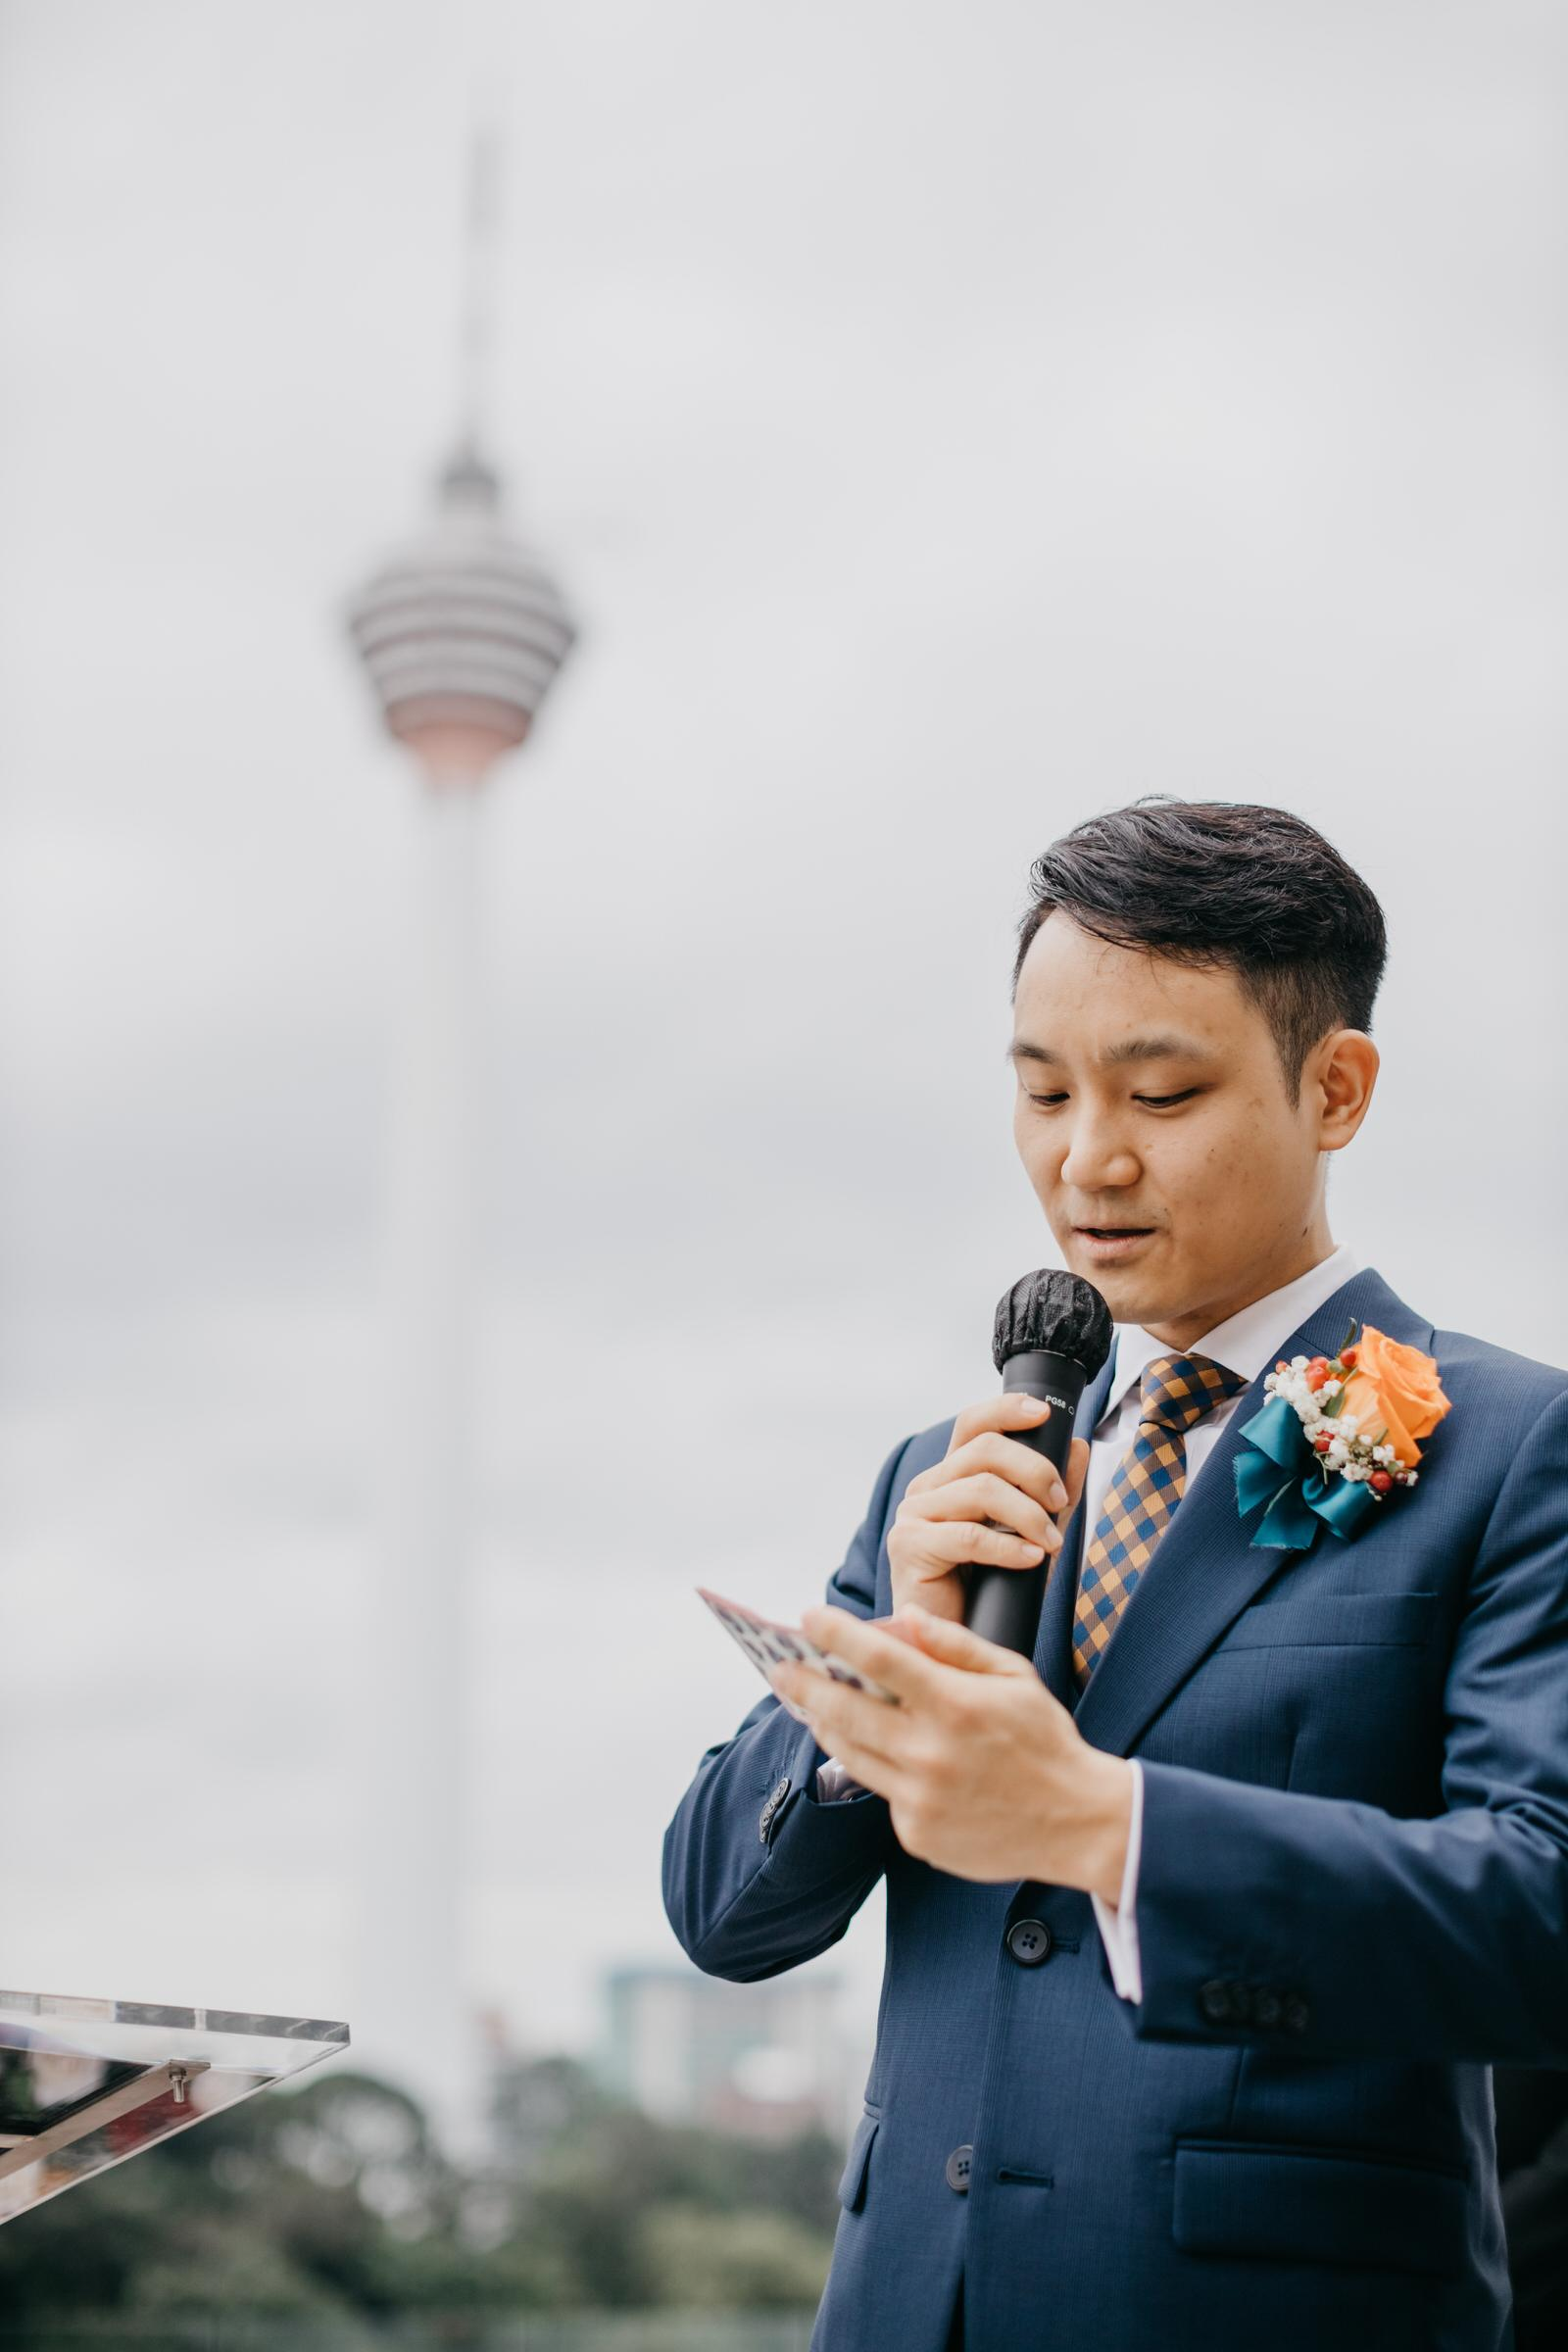 Vow Exchange Boho Deco Rooftop Poolside Wedding at Hotel Stripes Kuala Lumpur MCO2.0 Cliff Choong Photography Malaysia Covid19 ROM